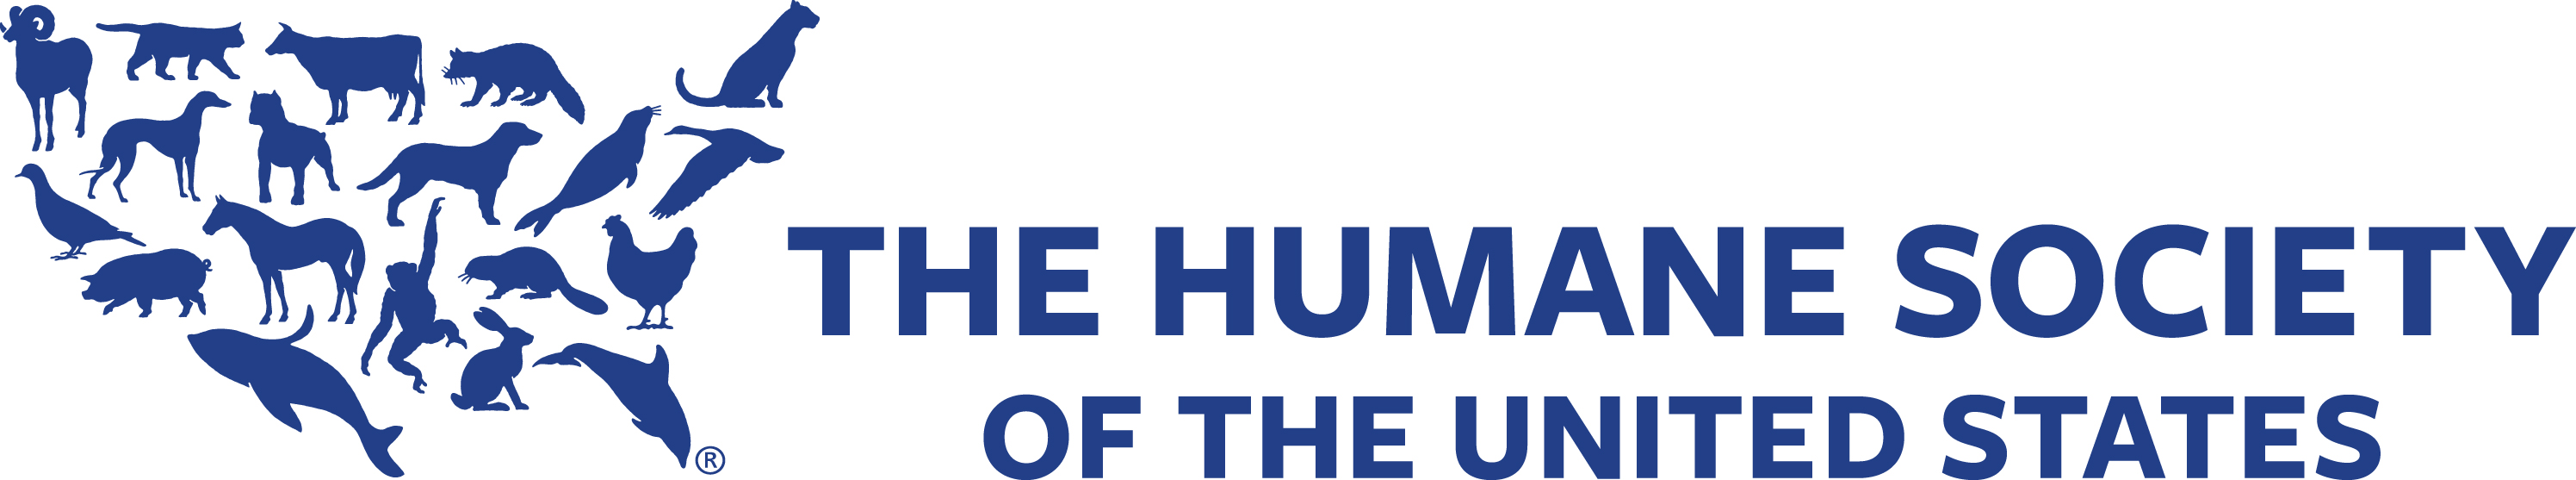 The Humane Society of the United States, GA